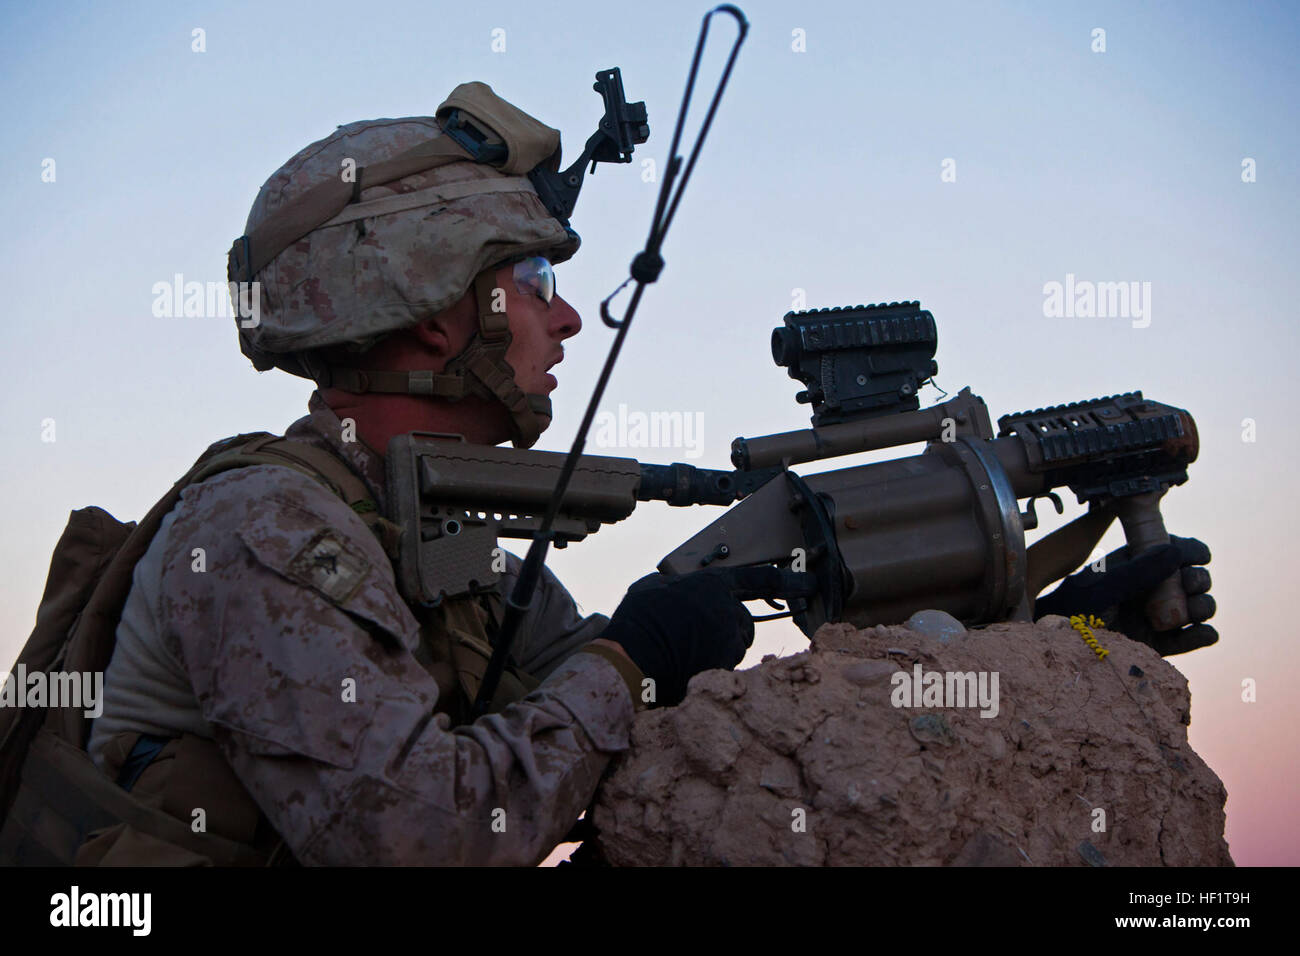 Lance Cpl. Nathan Gulbronson, a Lambertville, Mich., native and rifleman with 1st Battalion, 9th Marines, watches Stock Photo